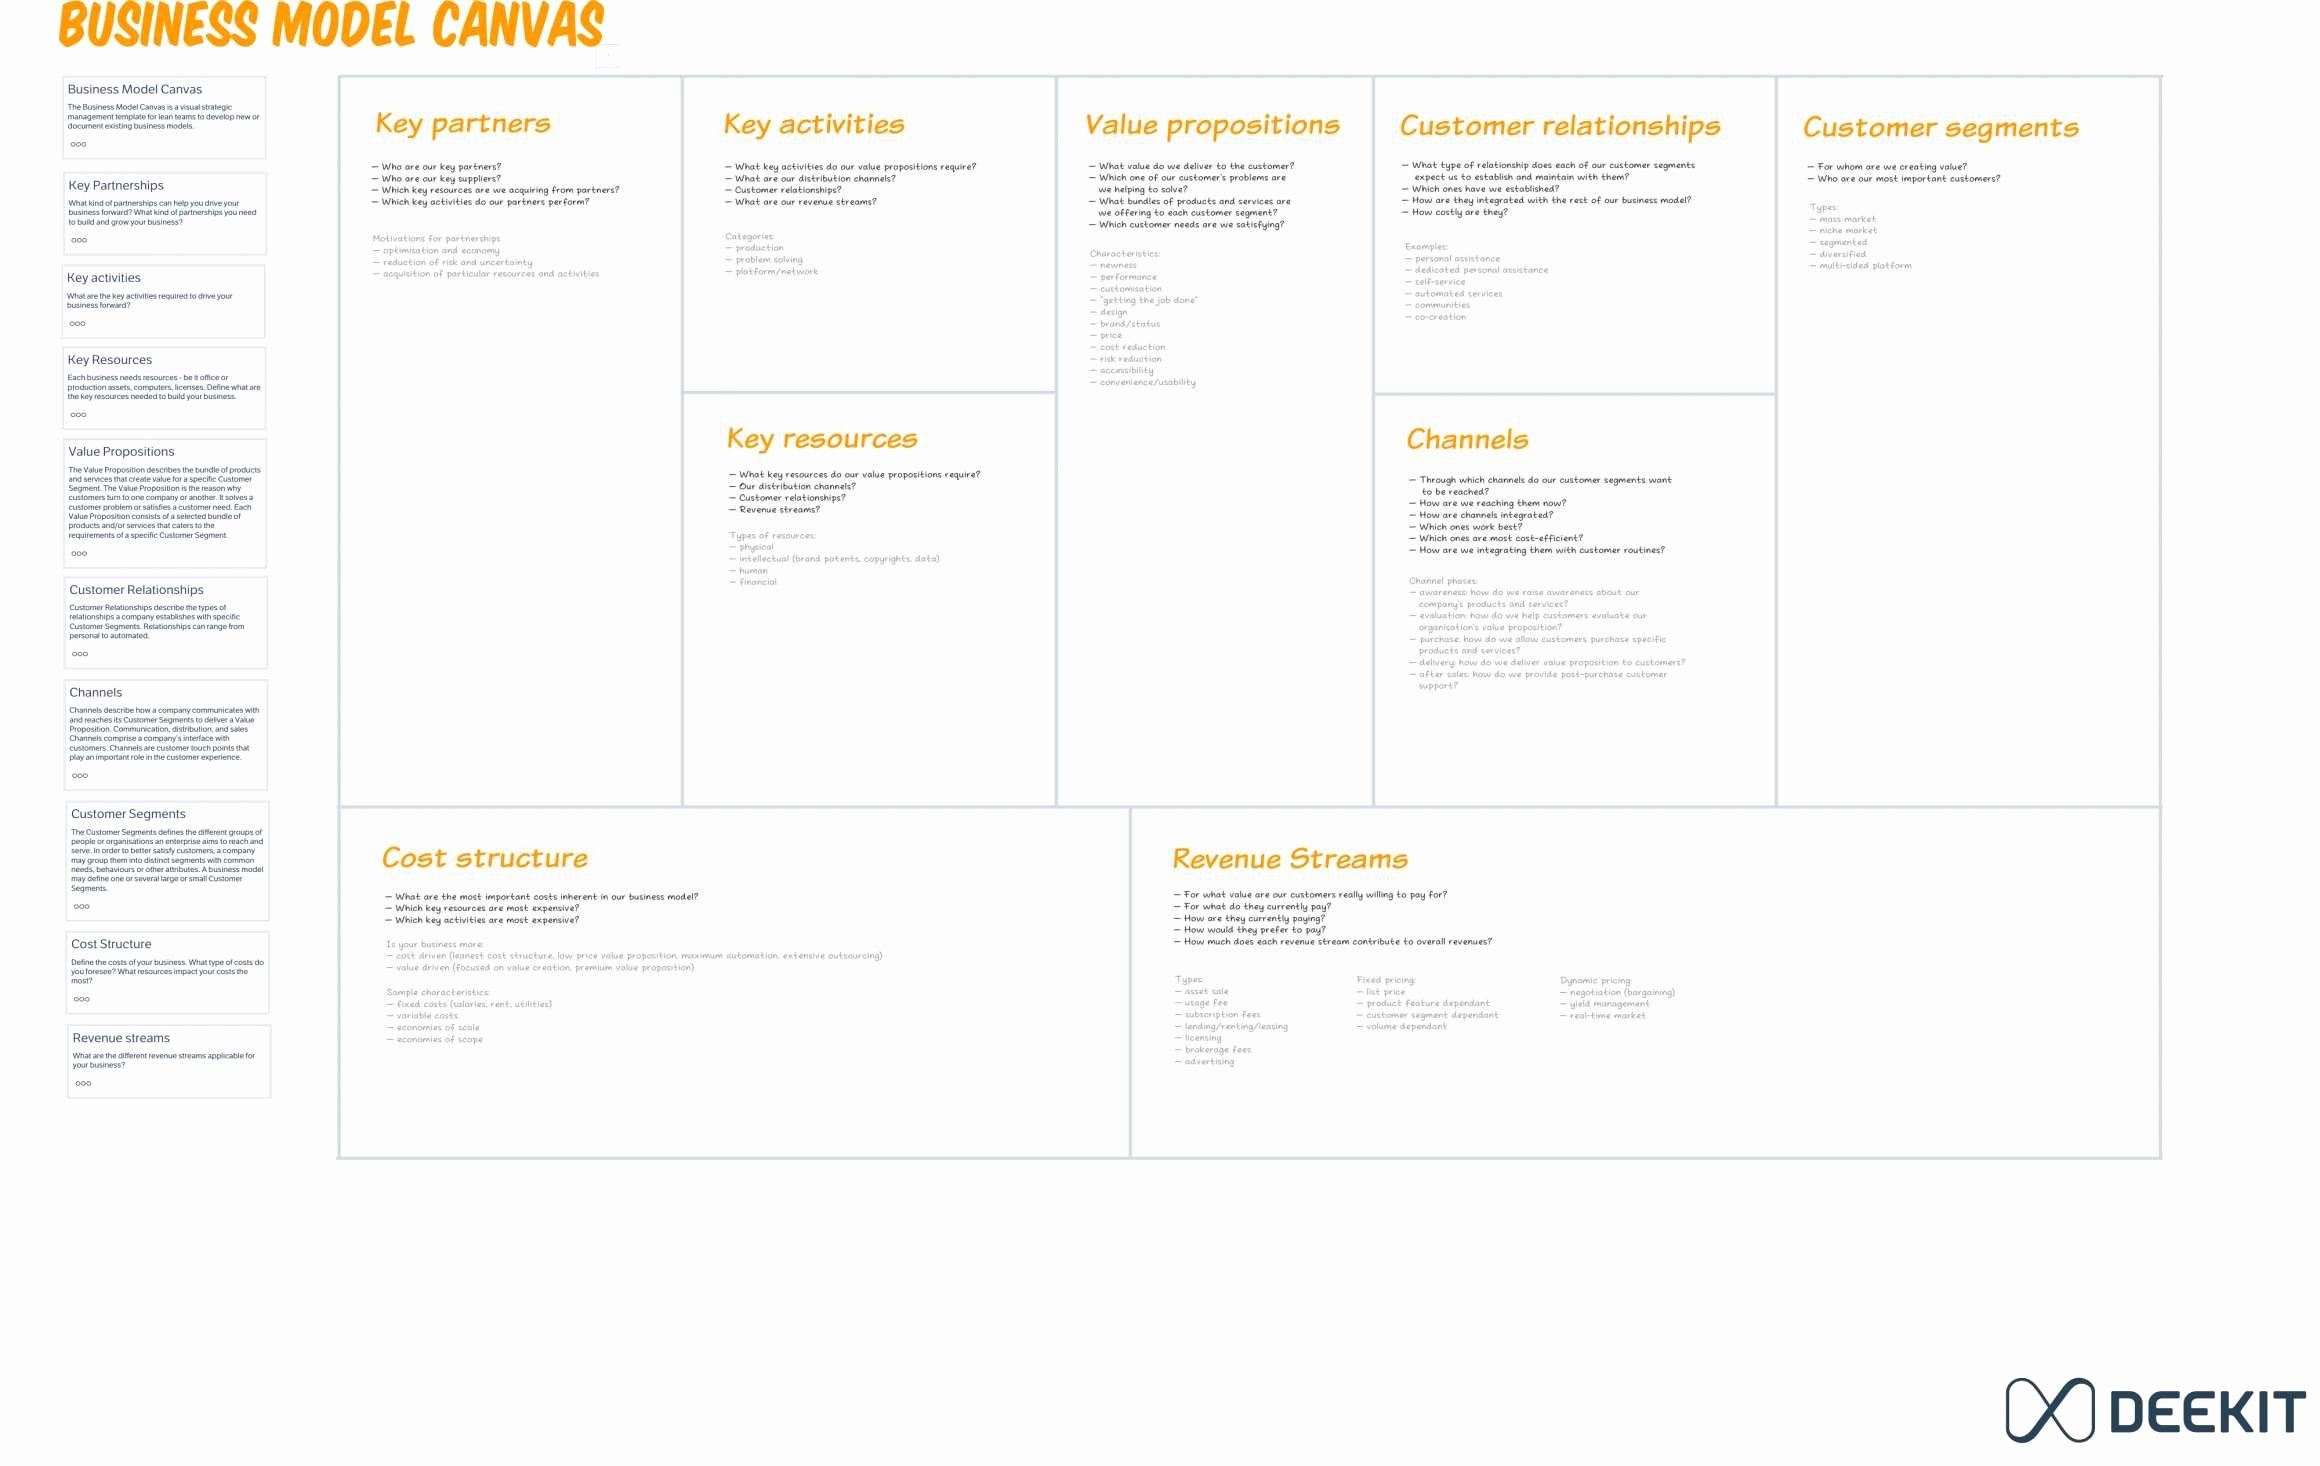 Business Model Canvas Template Excel Beautiful Business Model Canvas Template Excel